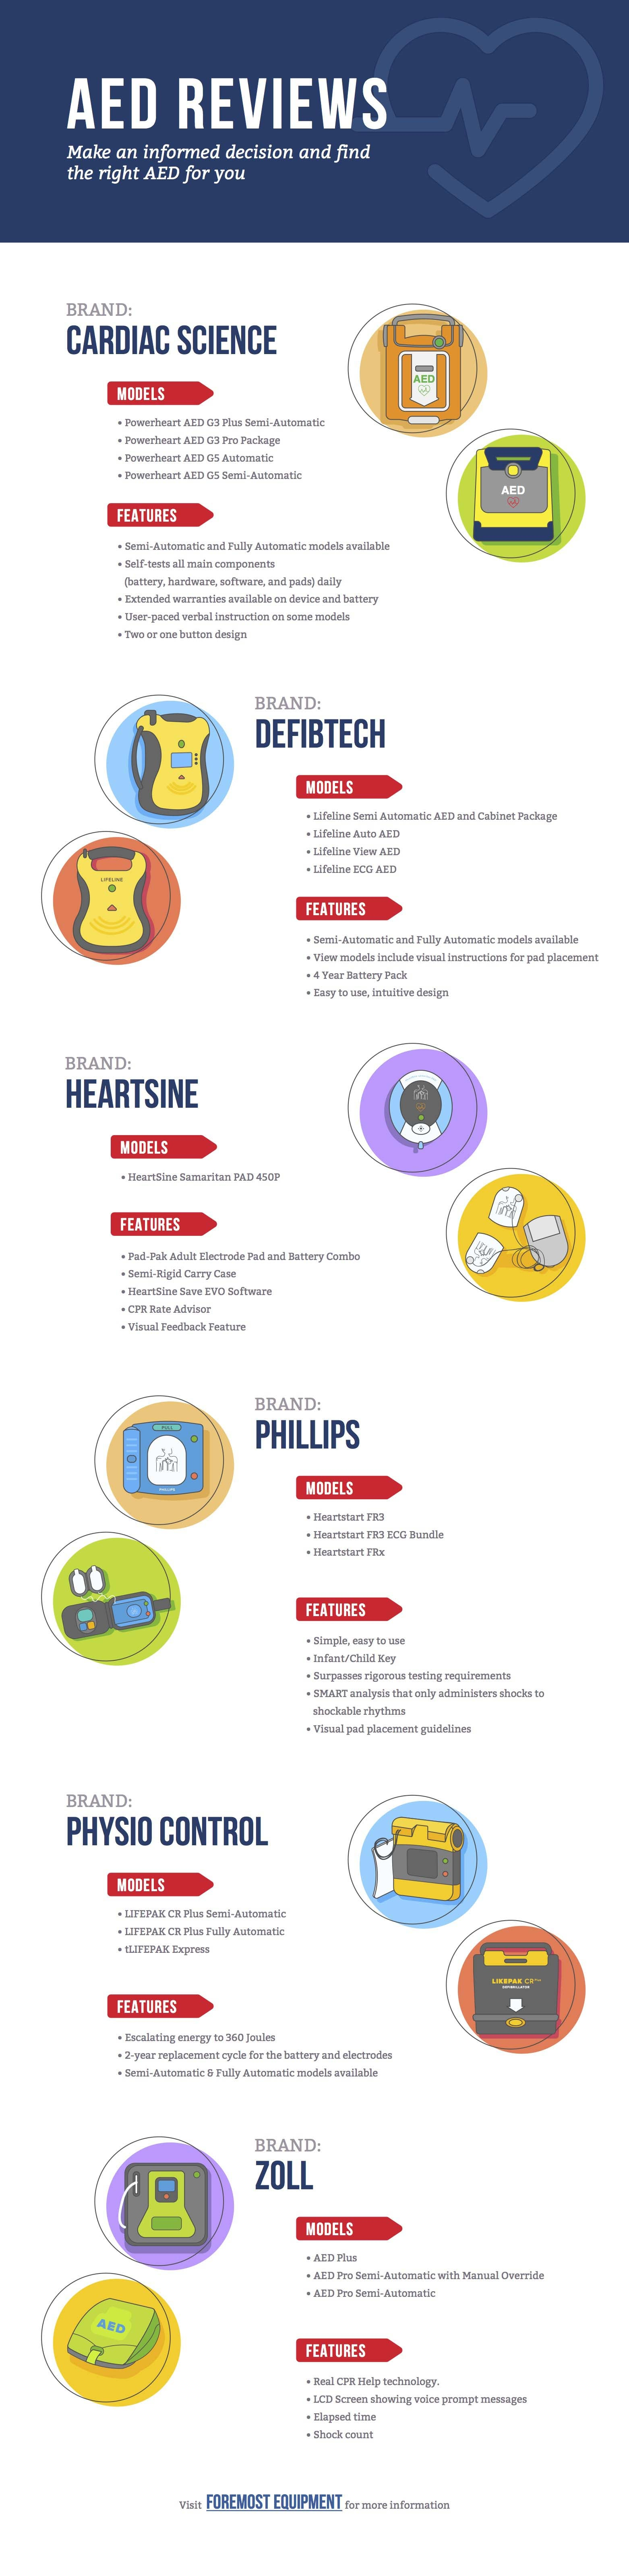 aed reviews infographic